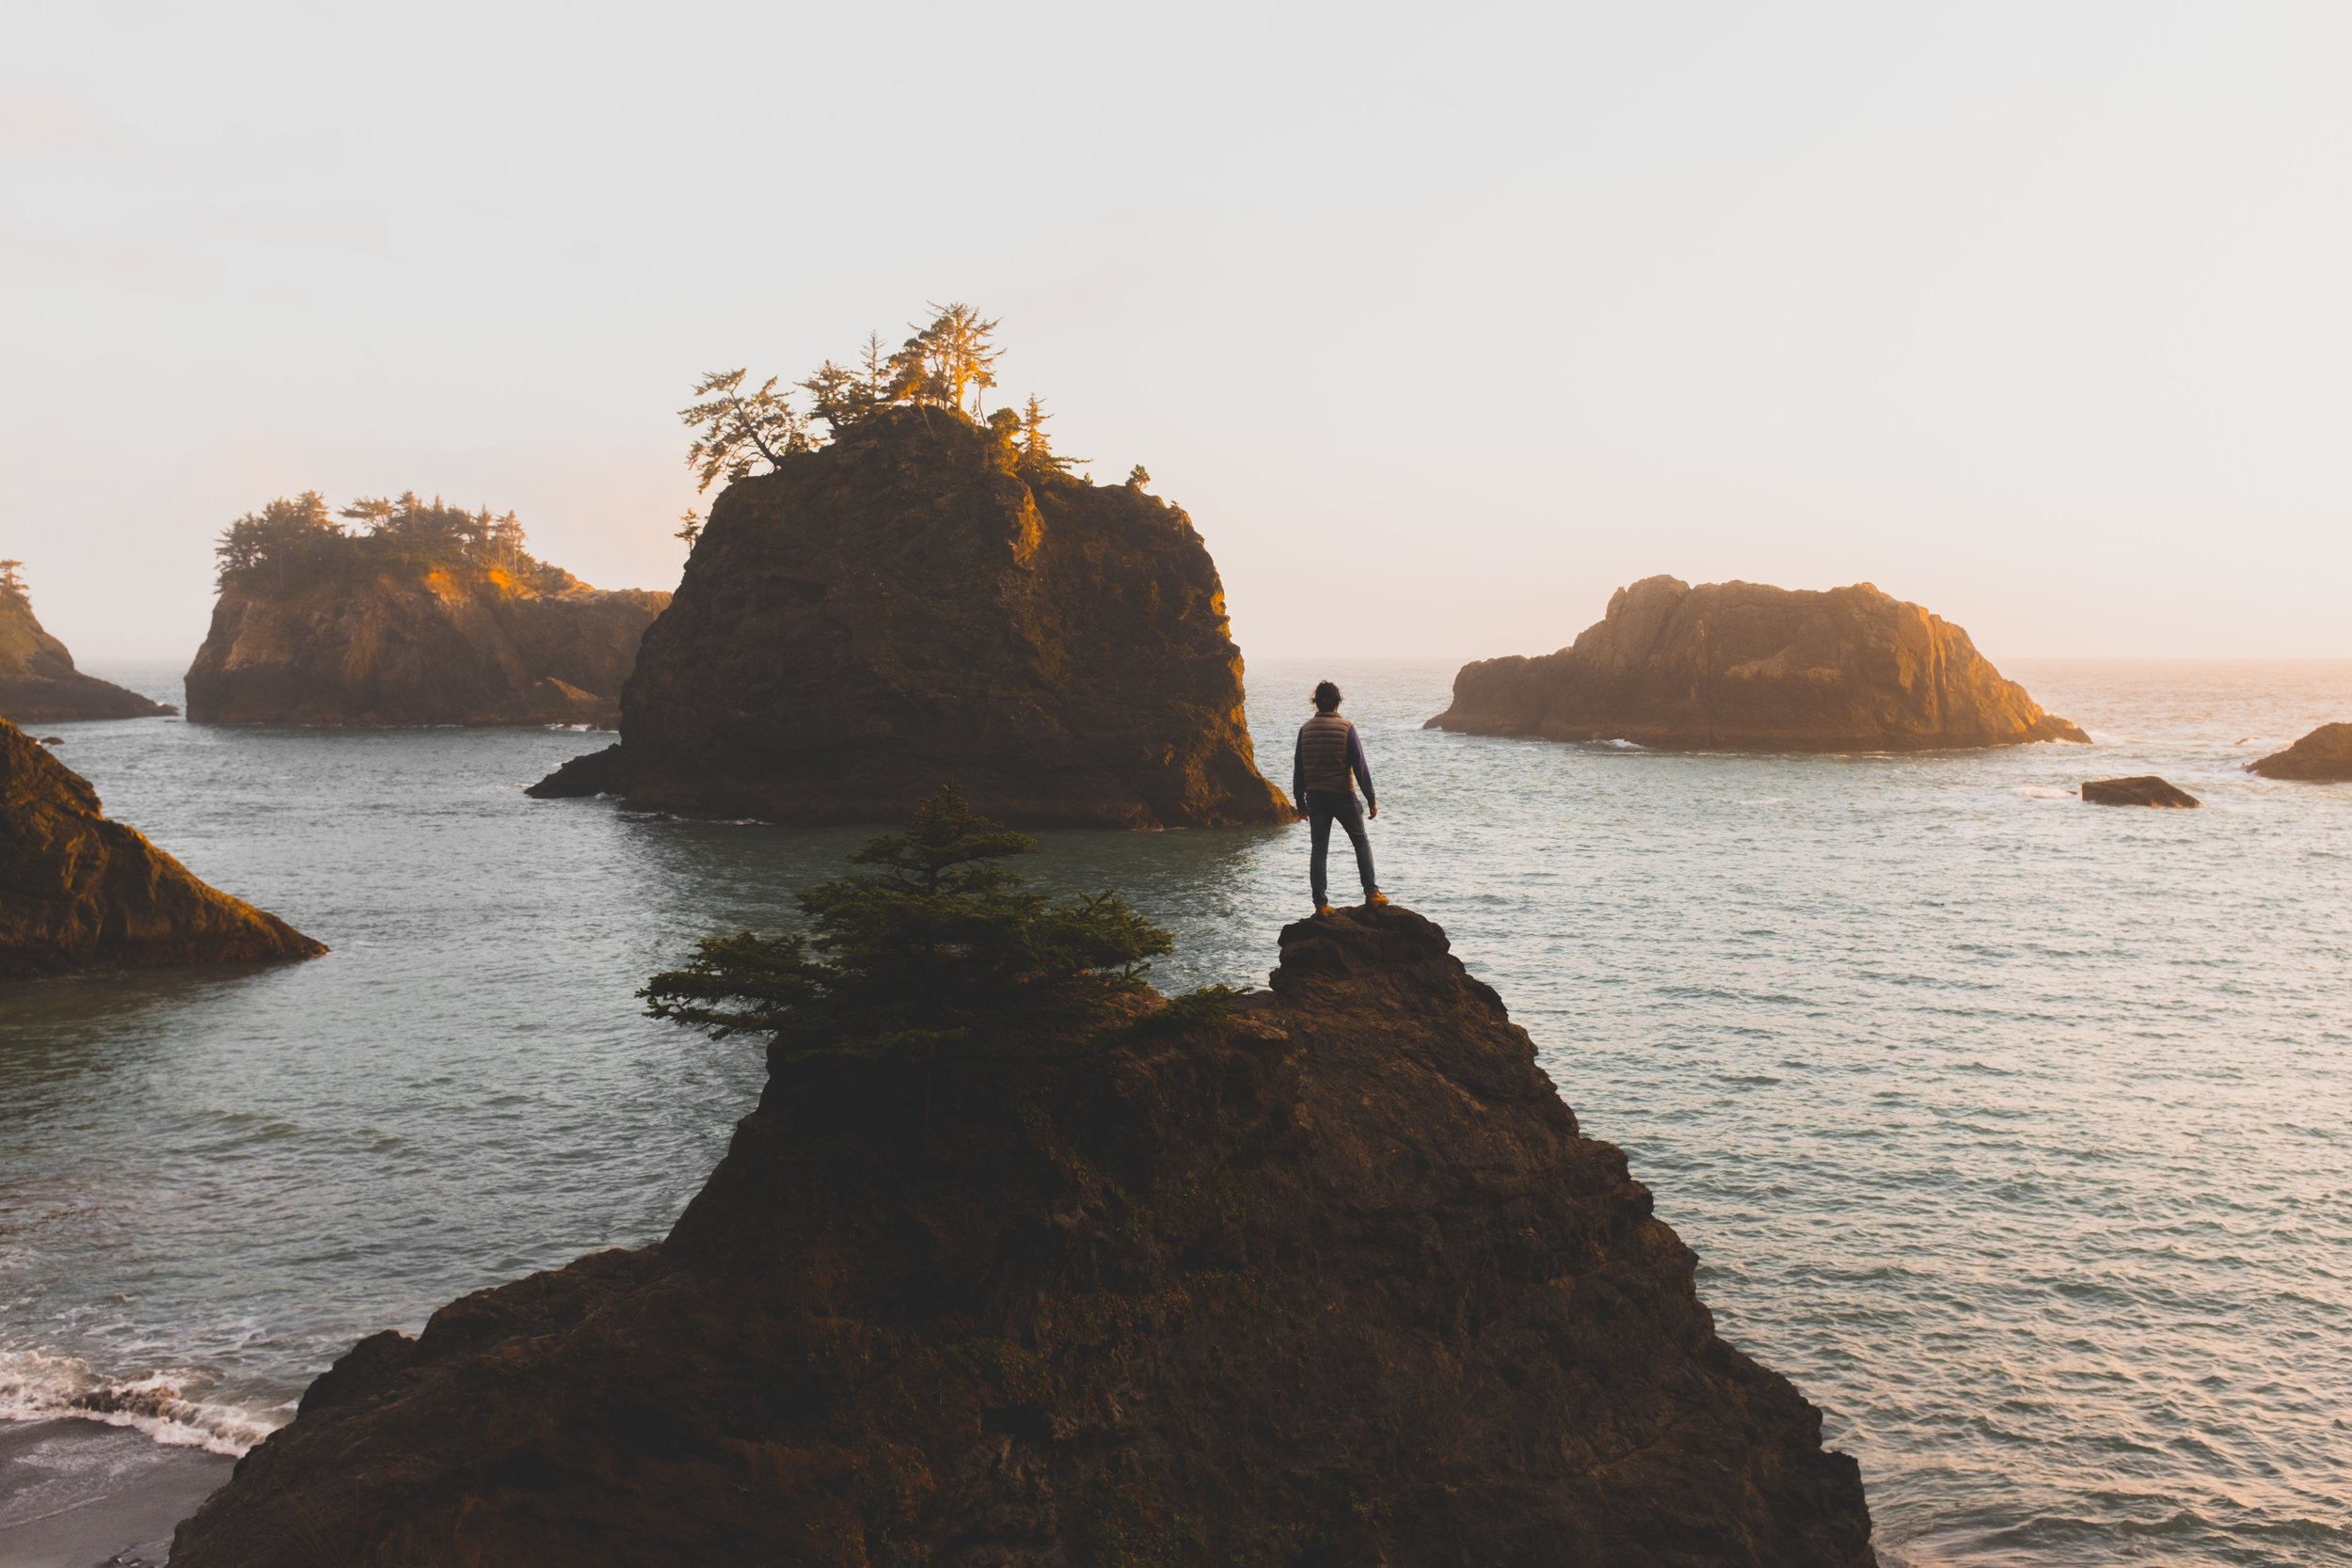 ***man on rock crags in ocean - $ SAVING TIPS StockSnap_8YBFQQ6C5A.jpg